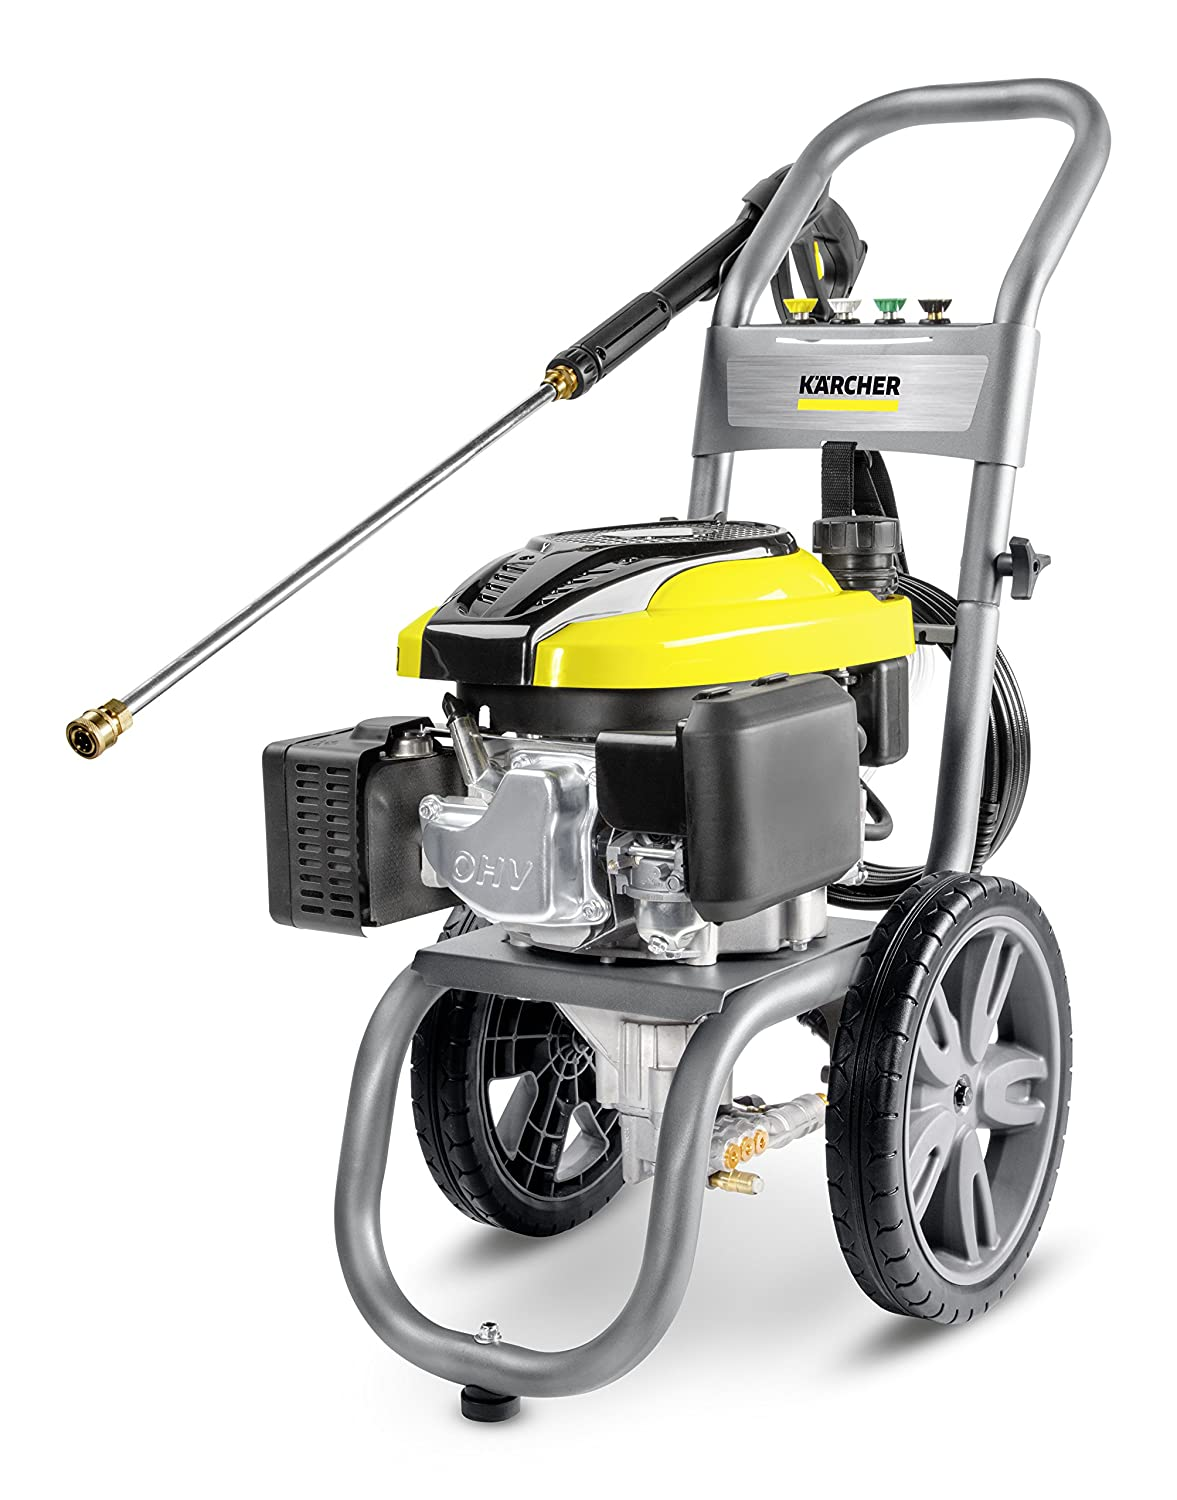 "Karcher 11073830 G2700R Gas Pressure Washer, 15"" x 28"" x 35"", Gray/Yellow"